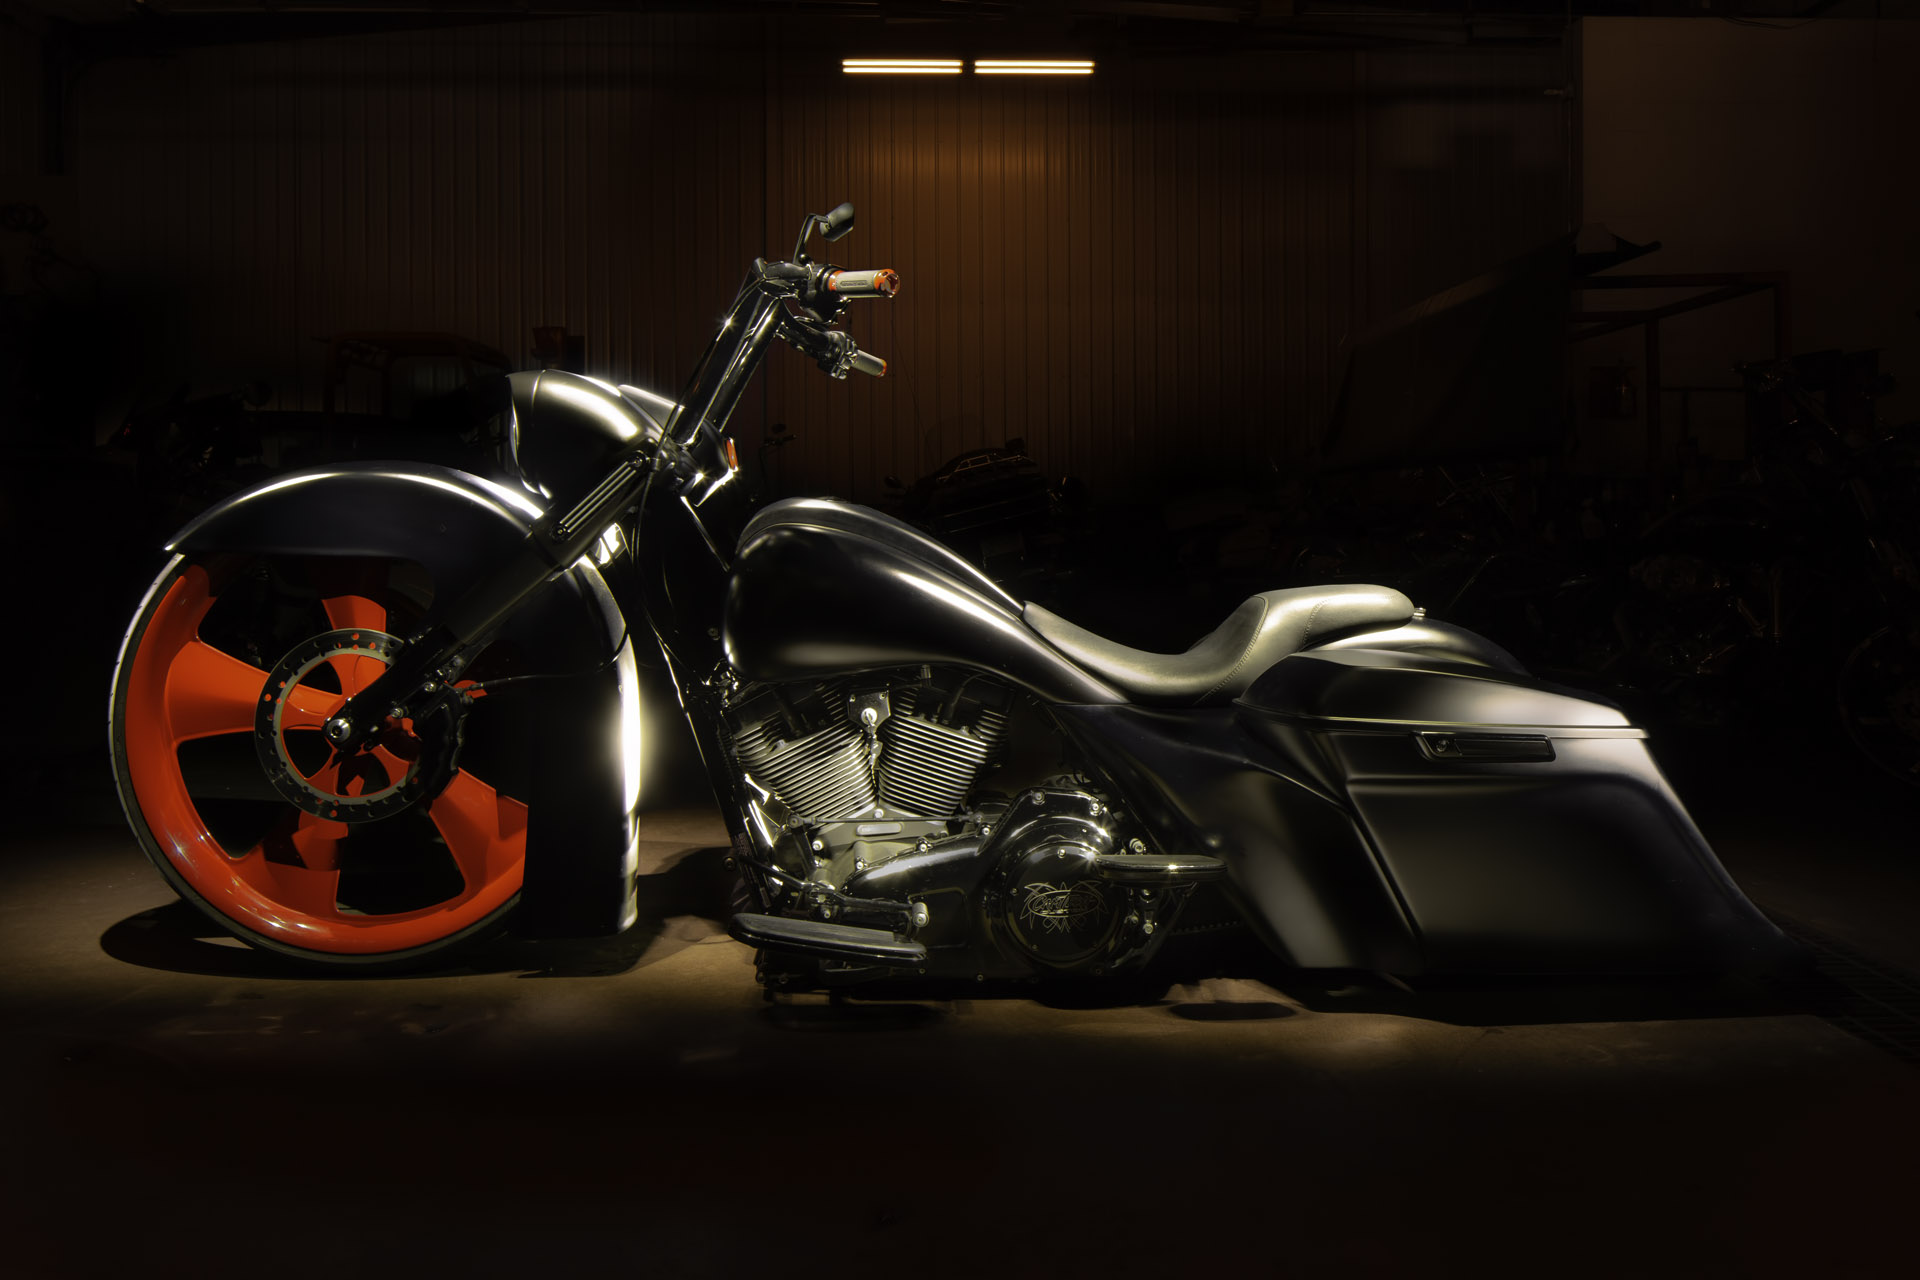 Light Painting, Motorcycle, Fine Art Photography